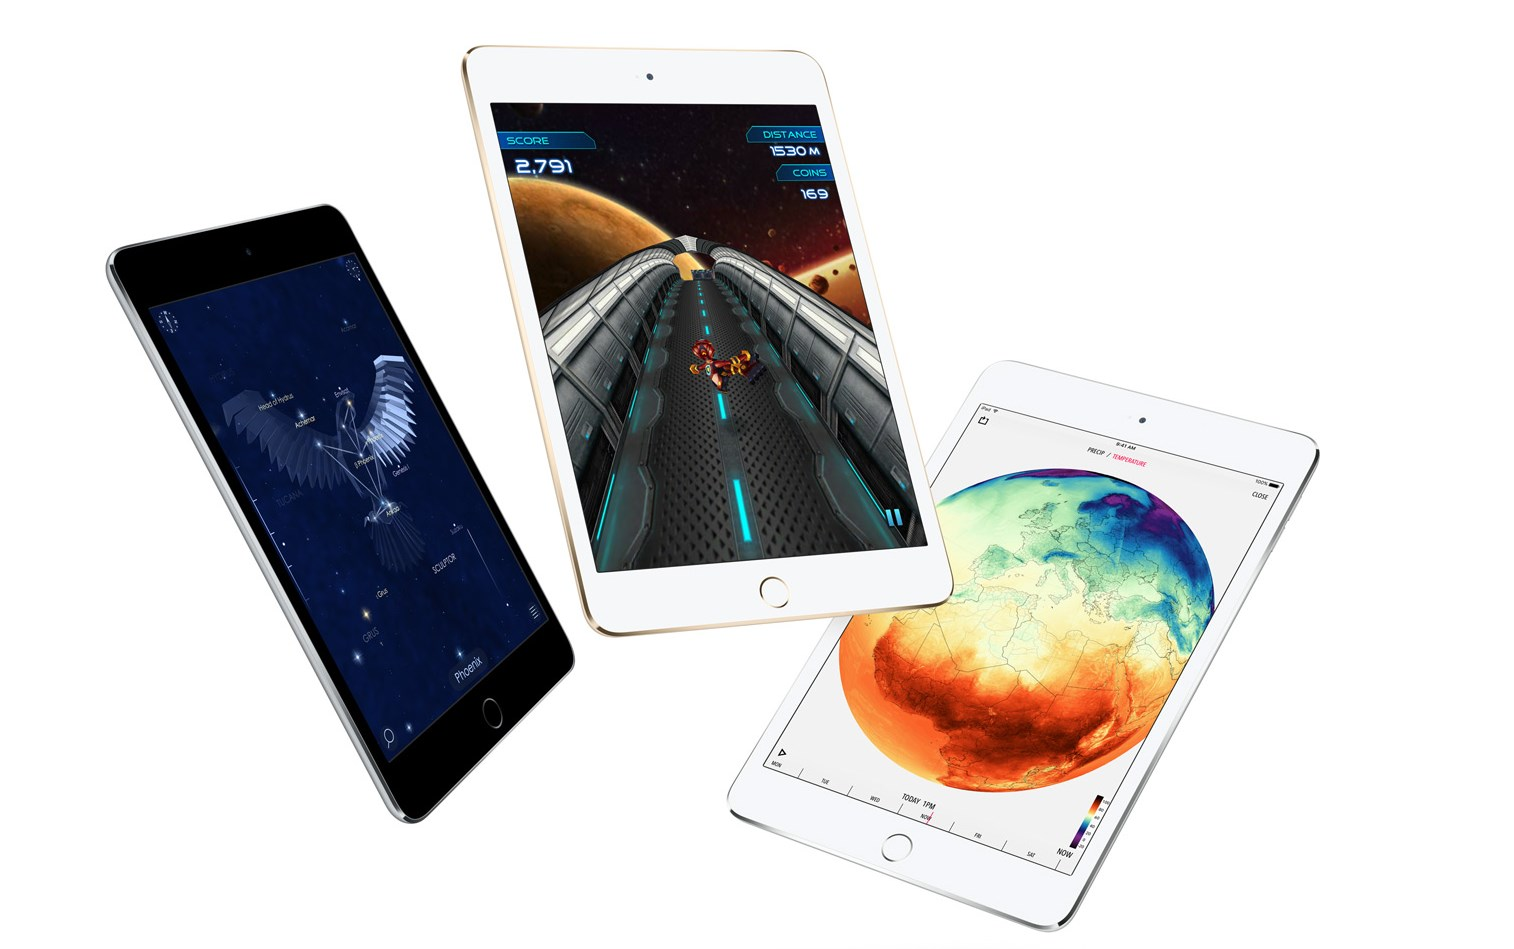 Three iPad mini 4 tablets floating in the air